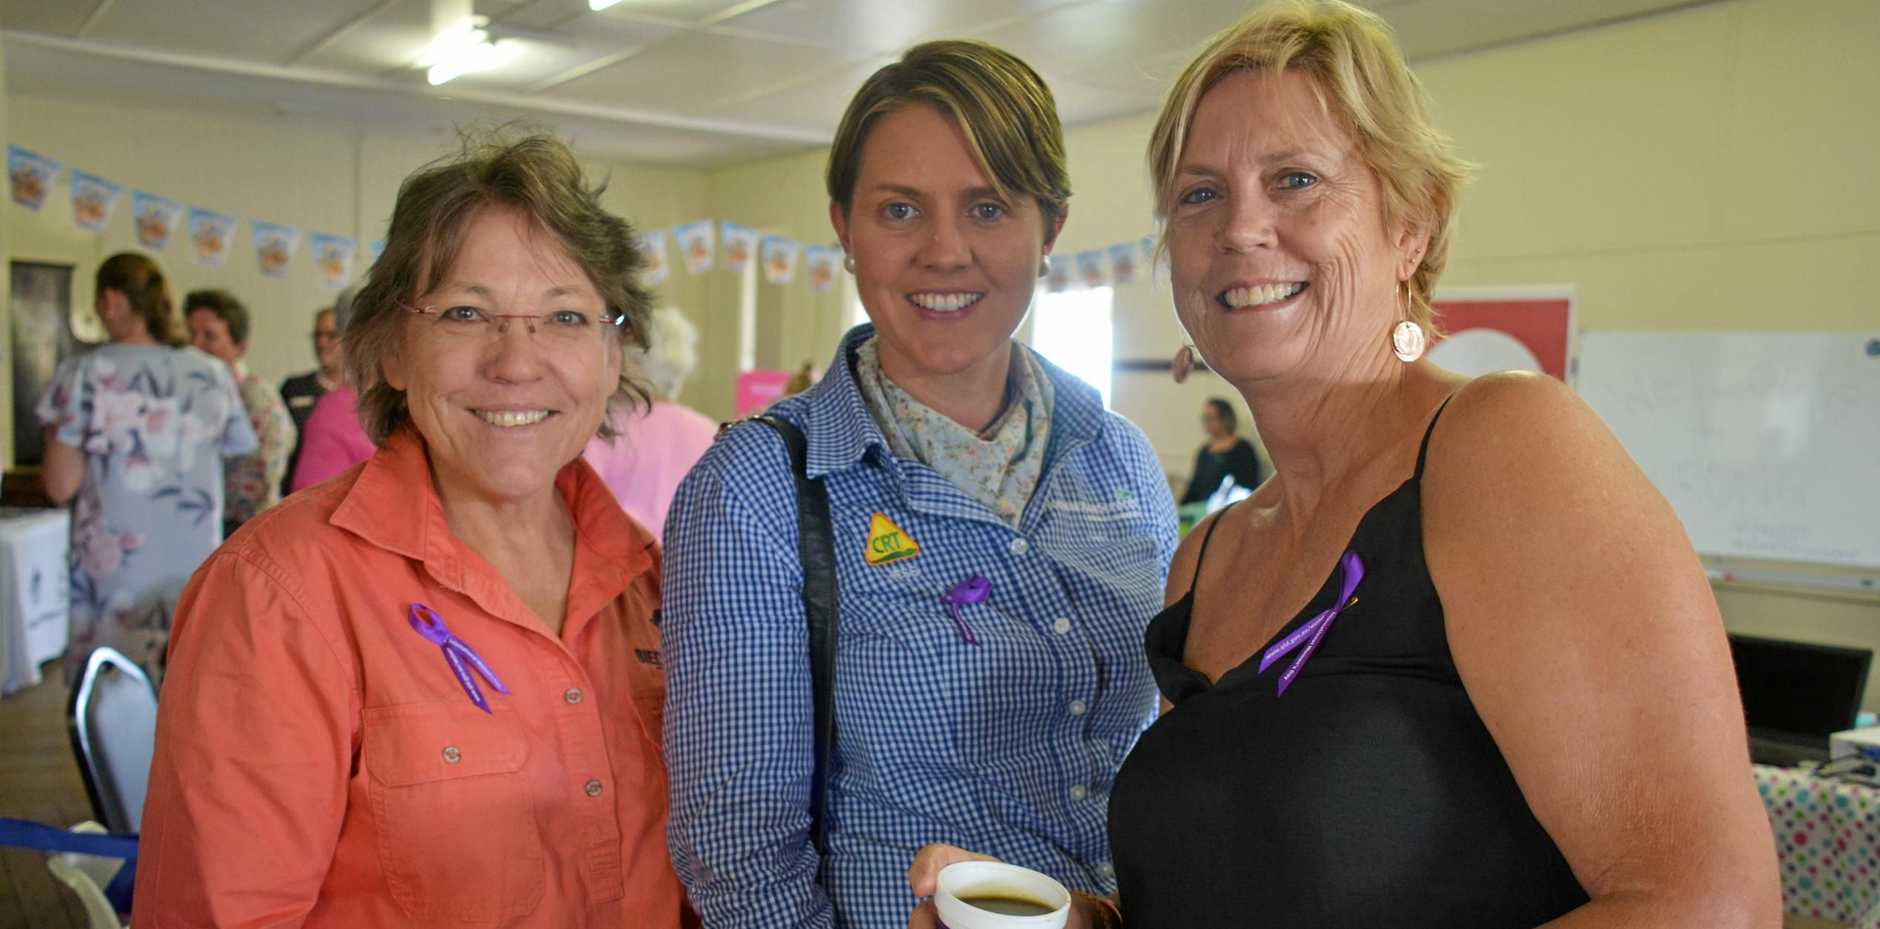 Karen Seiler, Jess Bargenquast and Sue Payne at the Burnett Inland's Women in Ag Day in Durong on March 3.